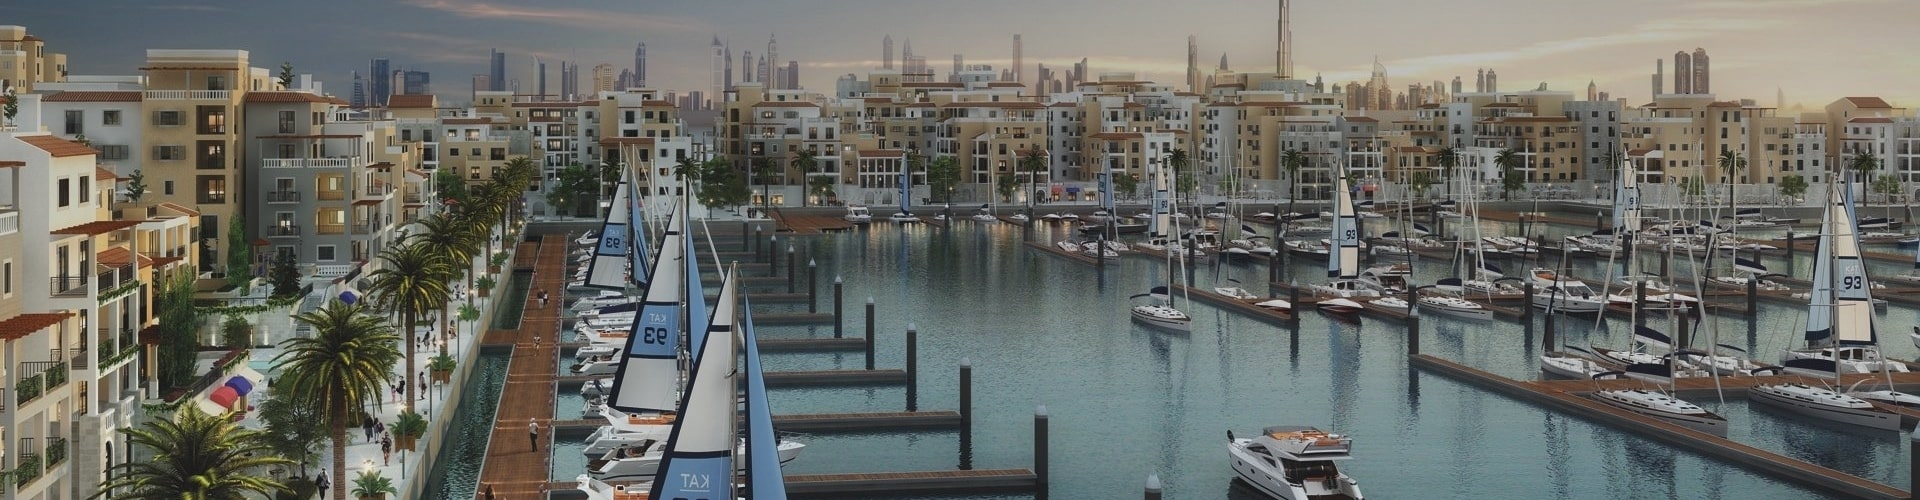 Meraas to highlight residences at Port de La Mer at Cityscape Global 2018